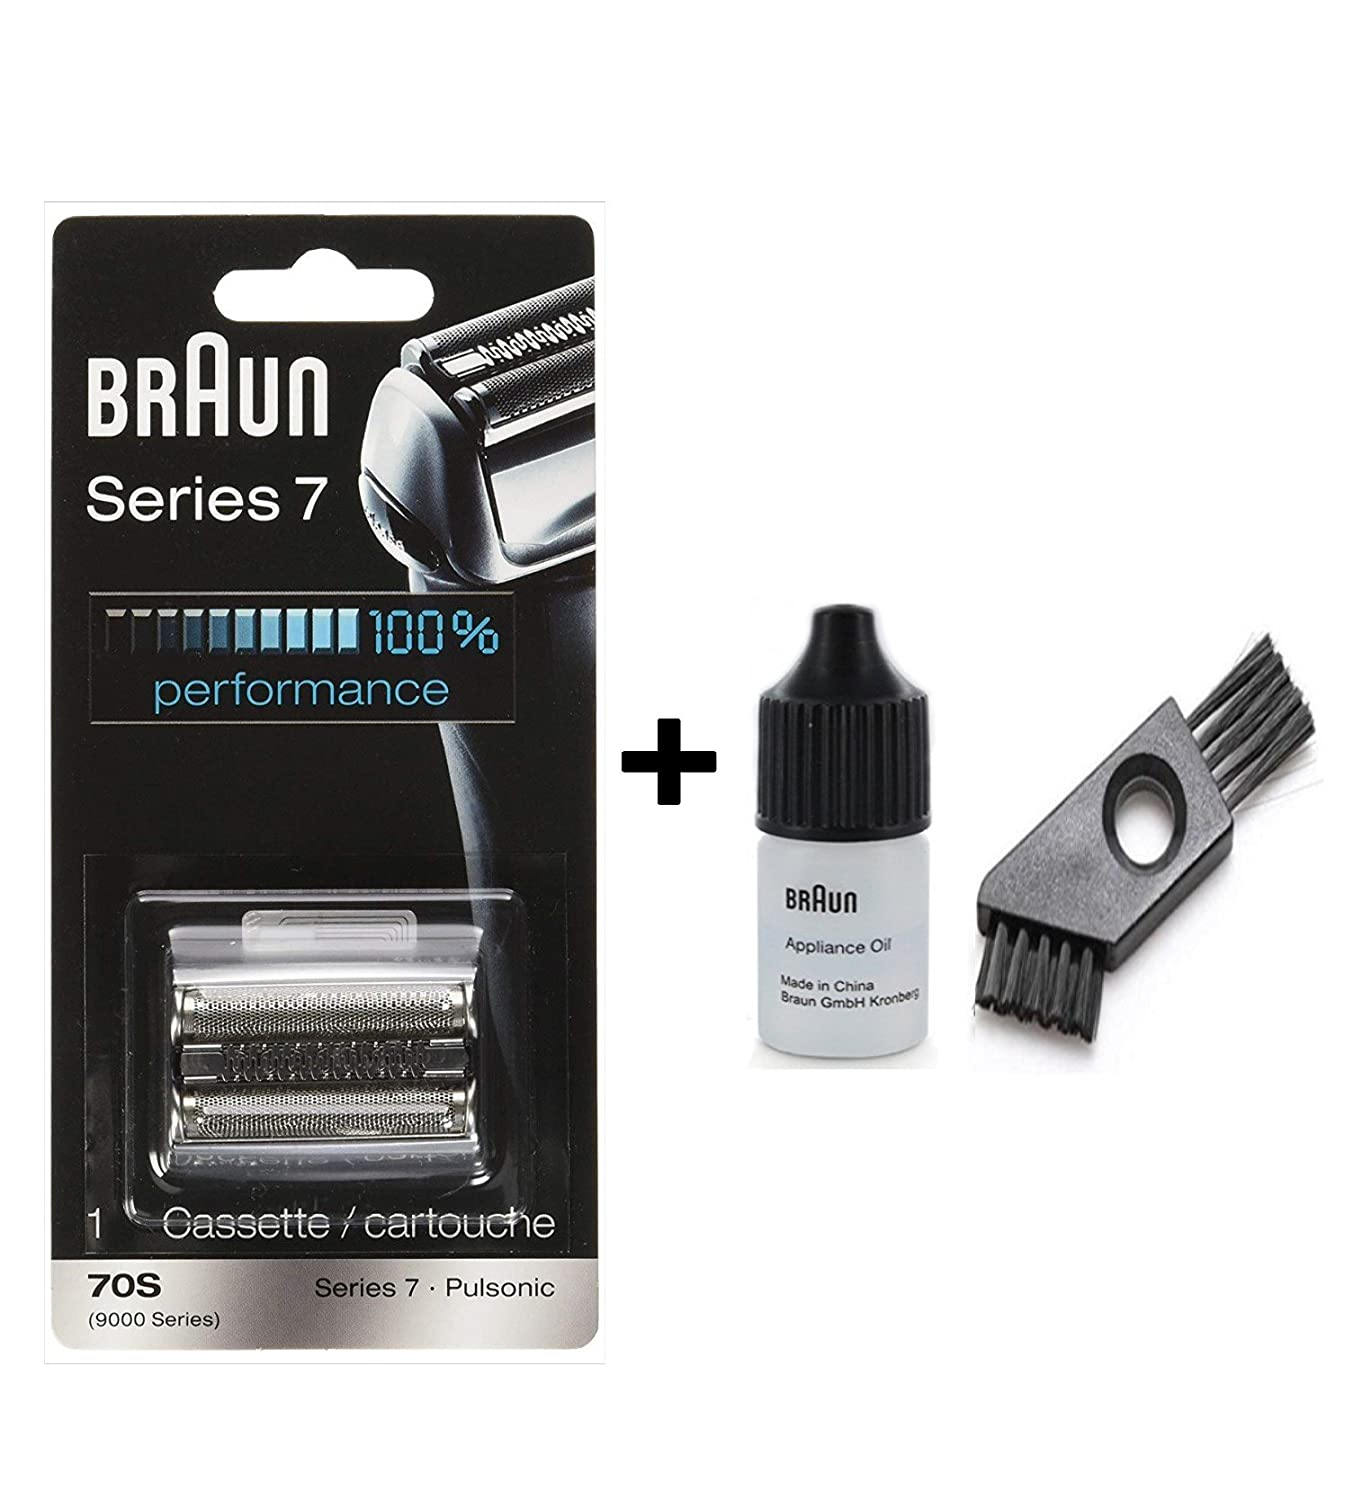 Braun 70S Cassette / 9000 Series 7 with approx. 6cm cleaning brush and oil 7ml